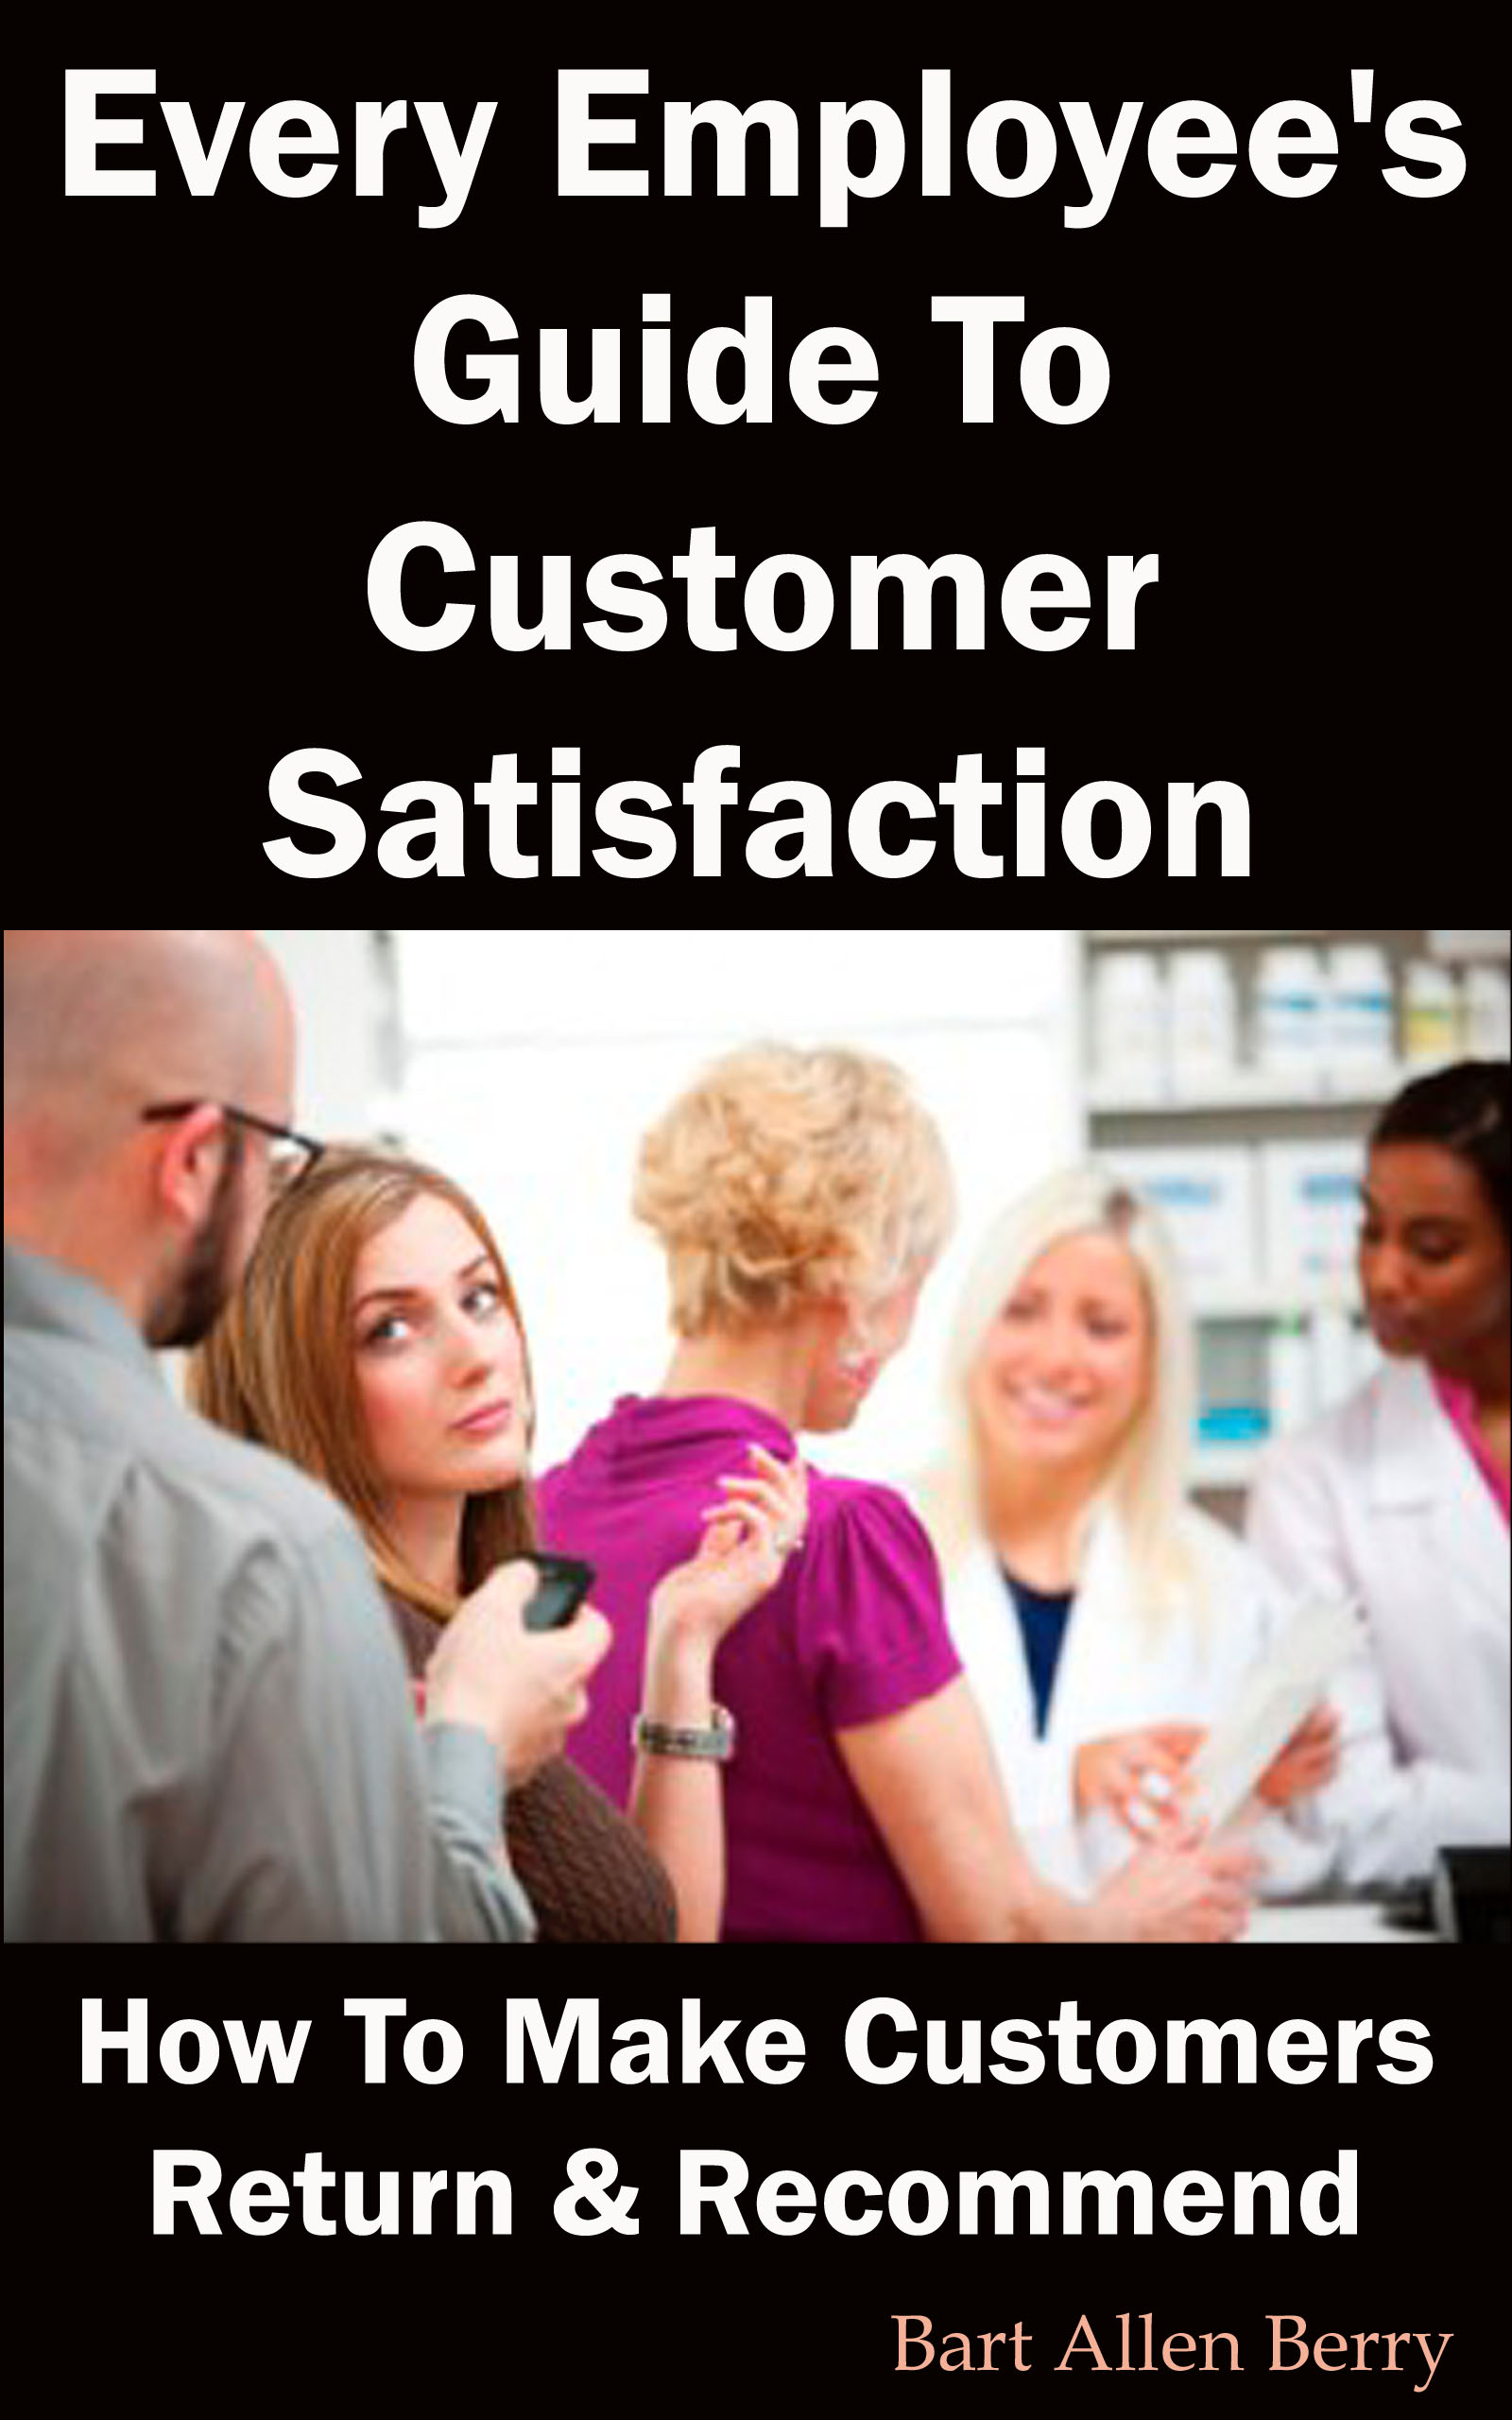 Every Employee's Guide To Customer Satisfaction